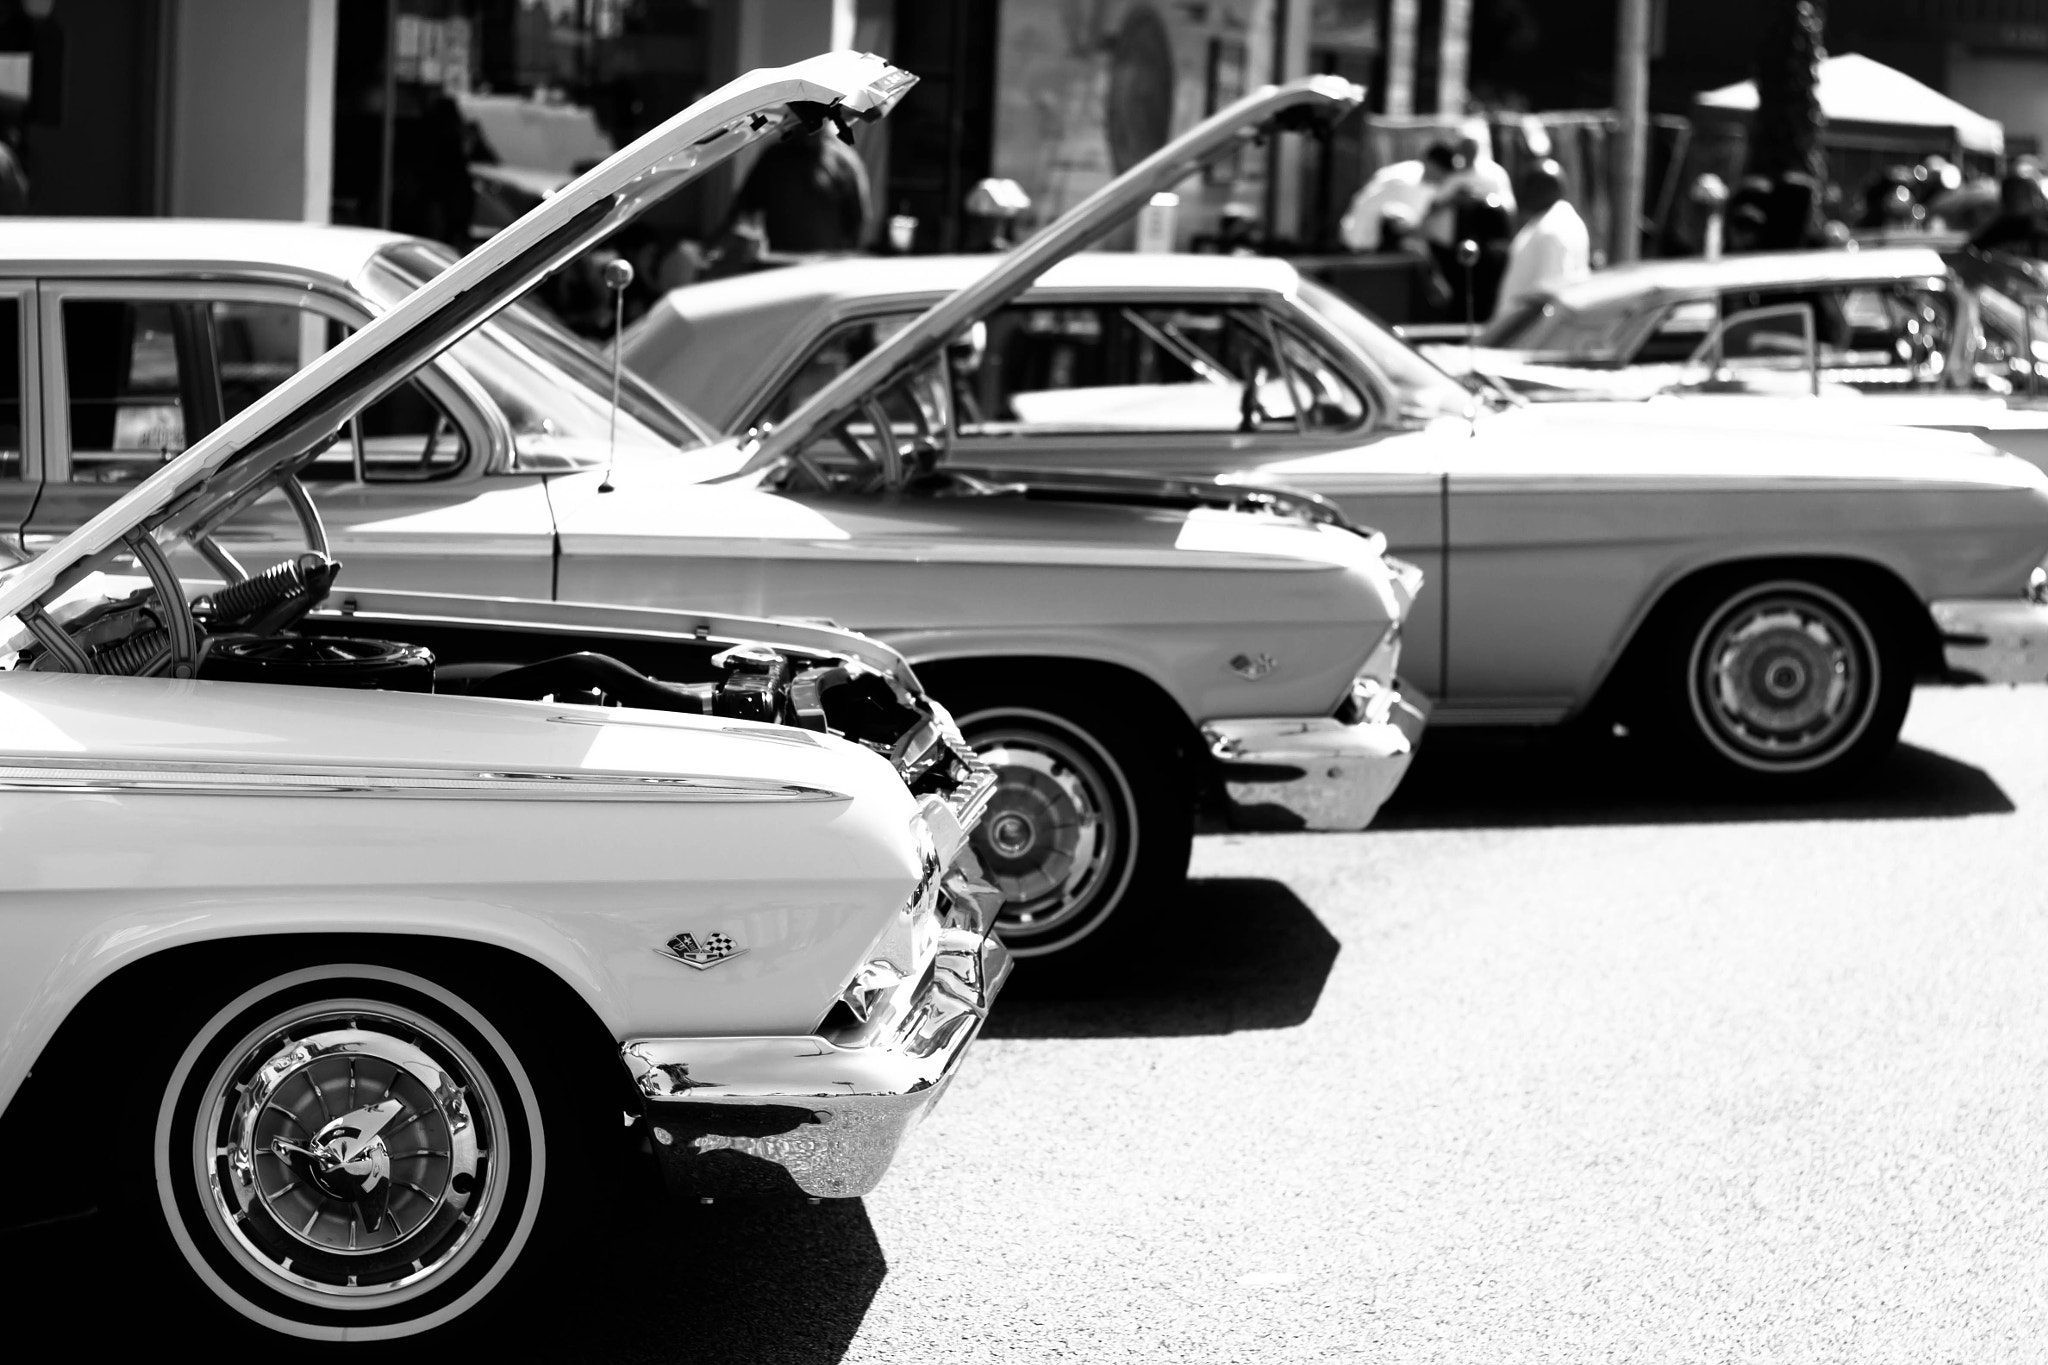 Photograph '64 Impalas by Robb Smooth on 500px